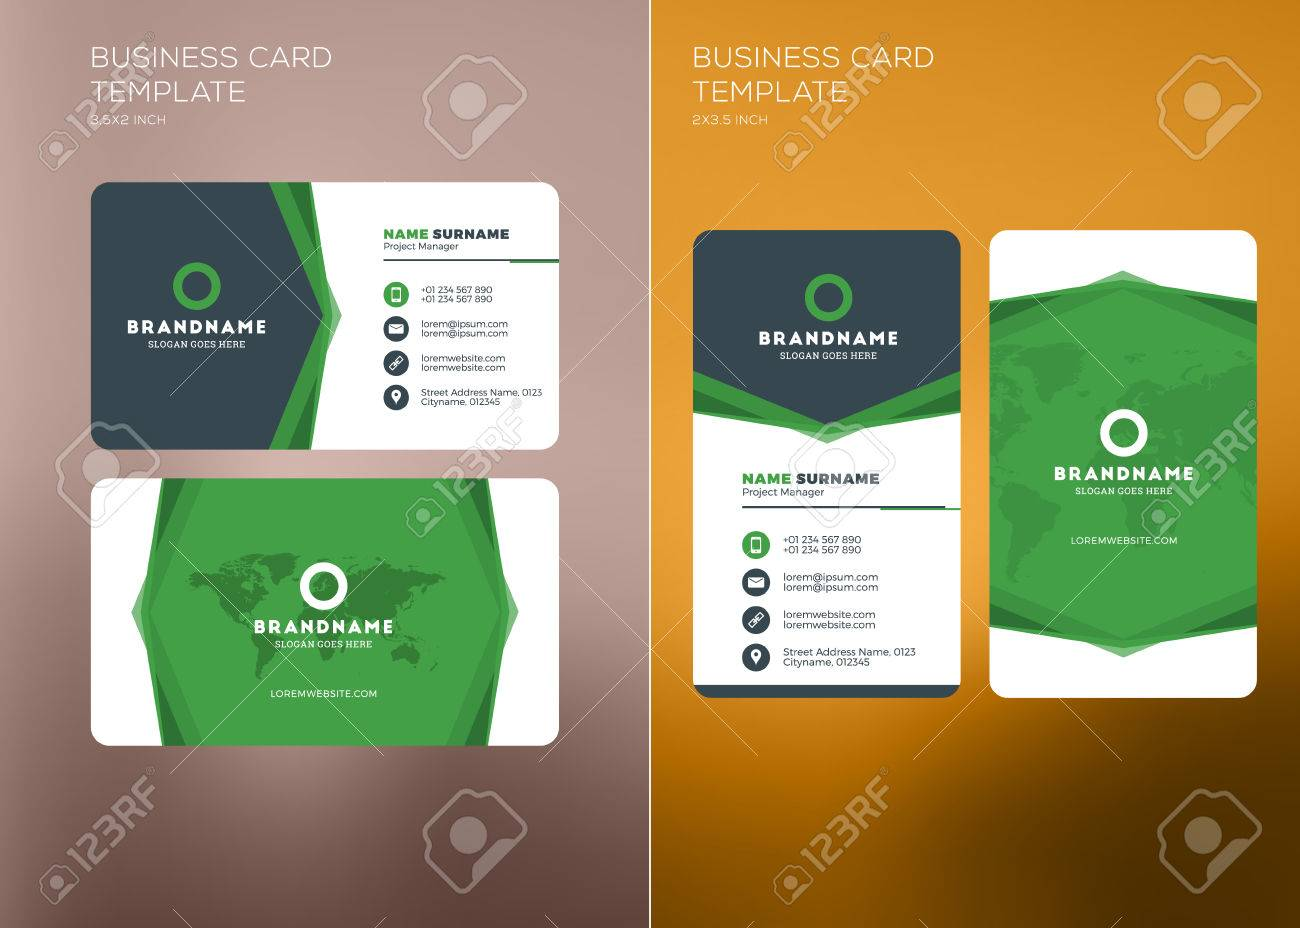 Business Card Printing Joondalup Image collections - Card Design And ...